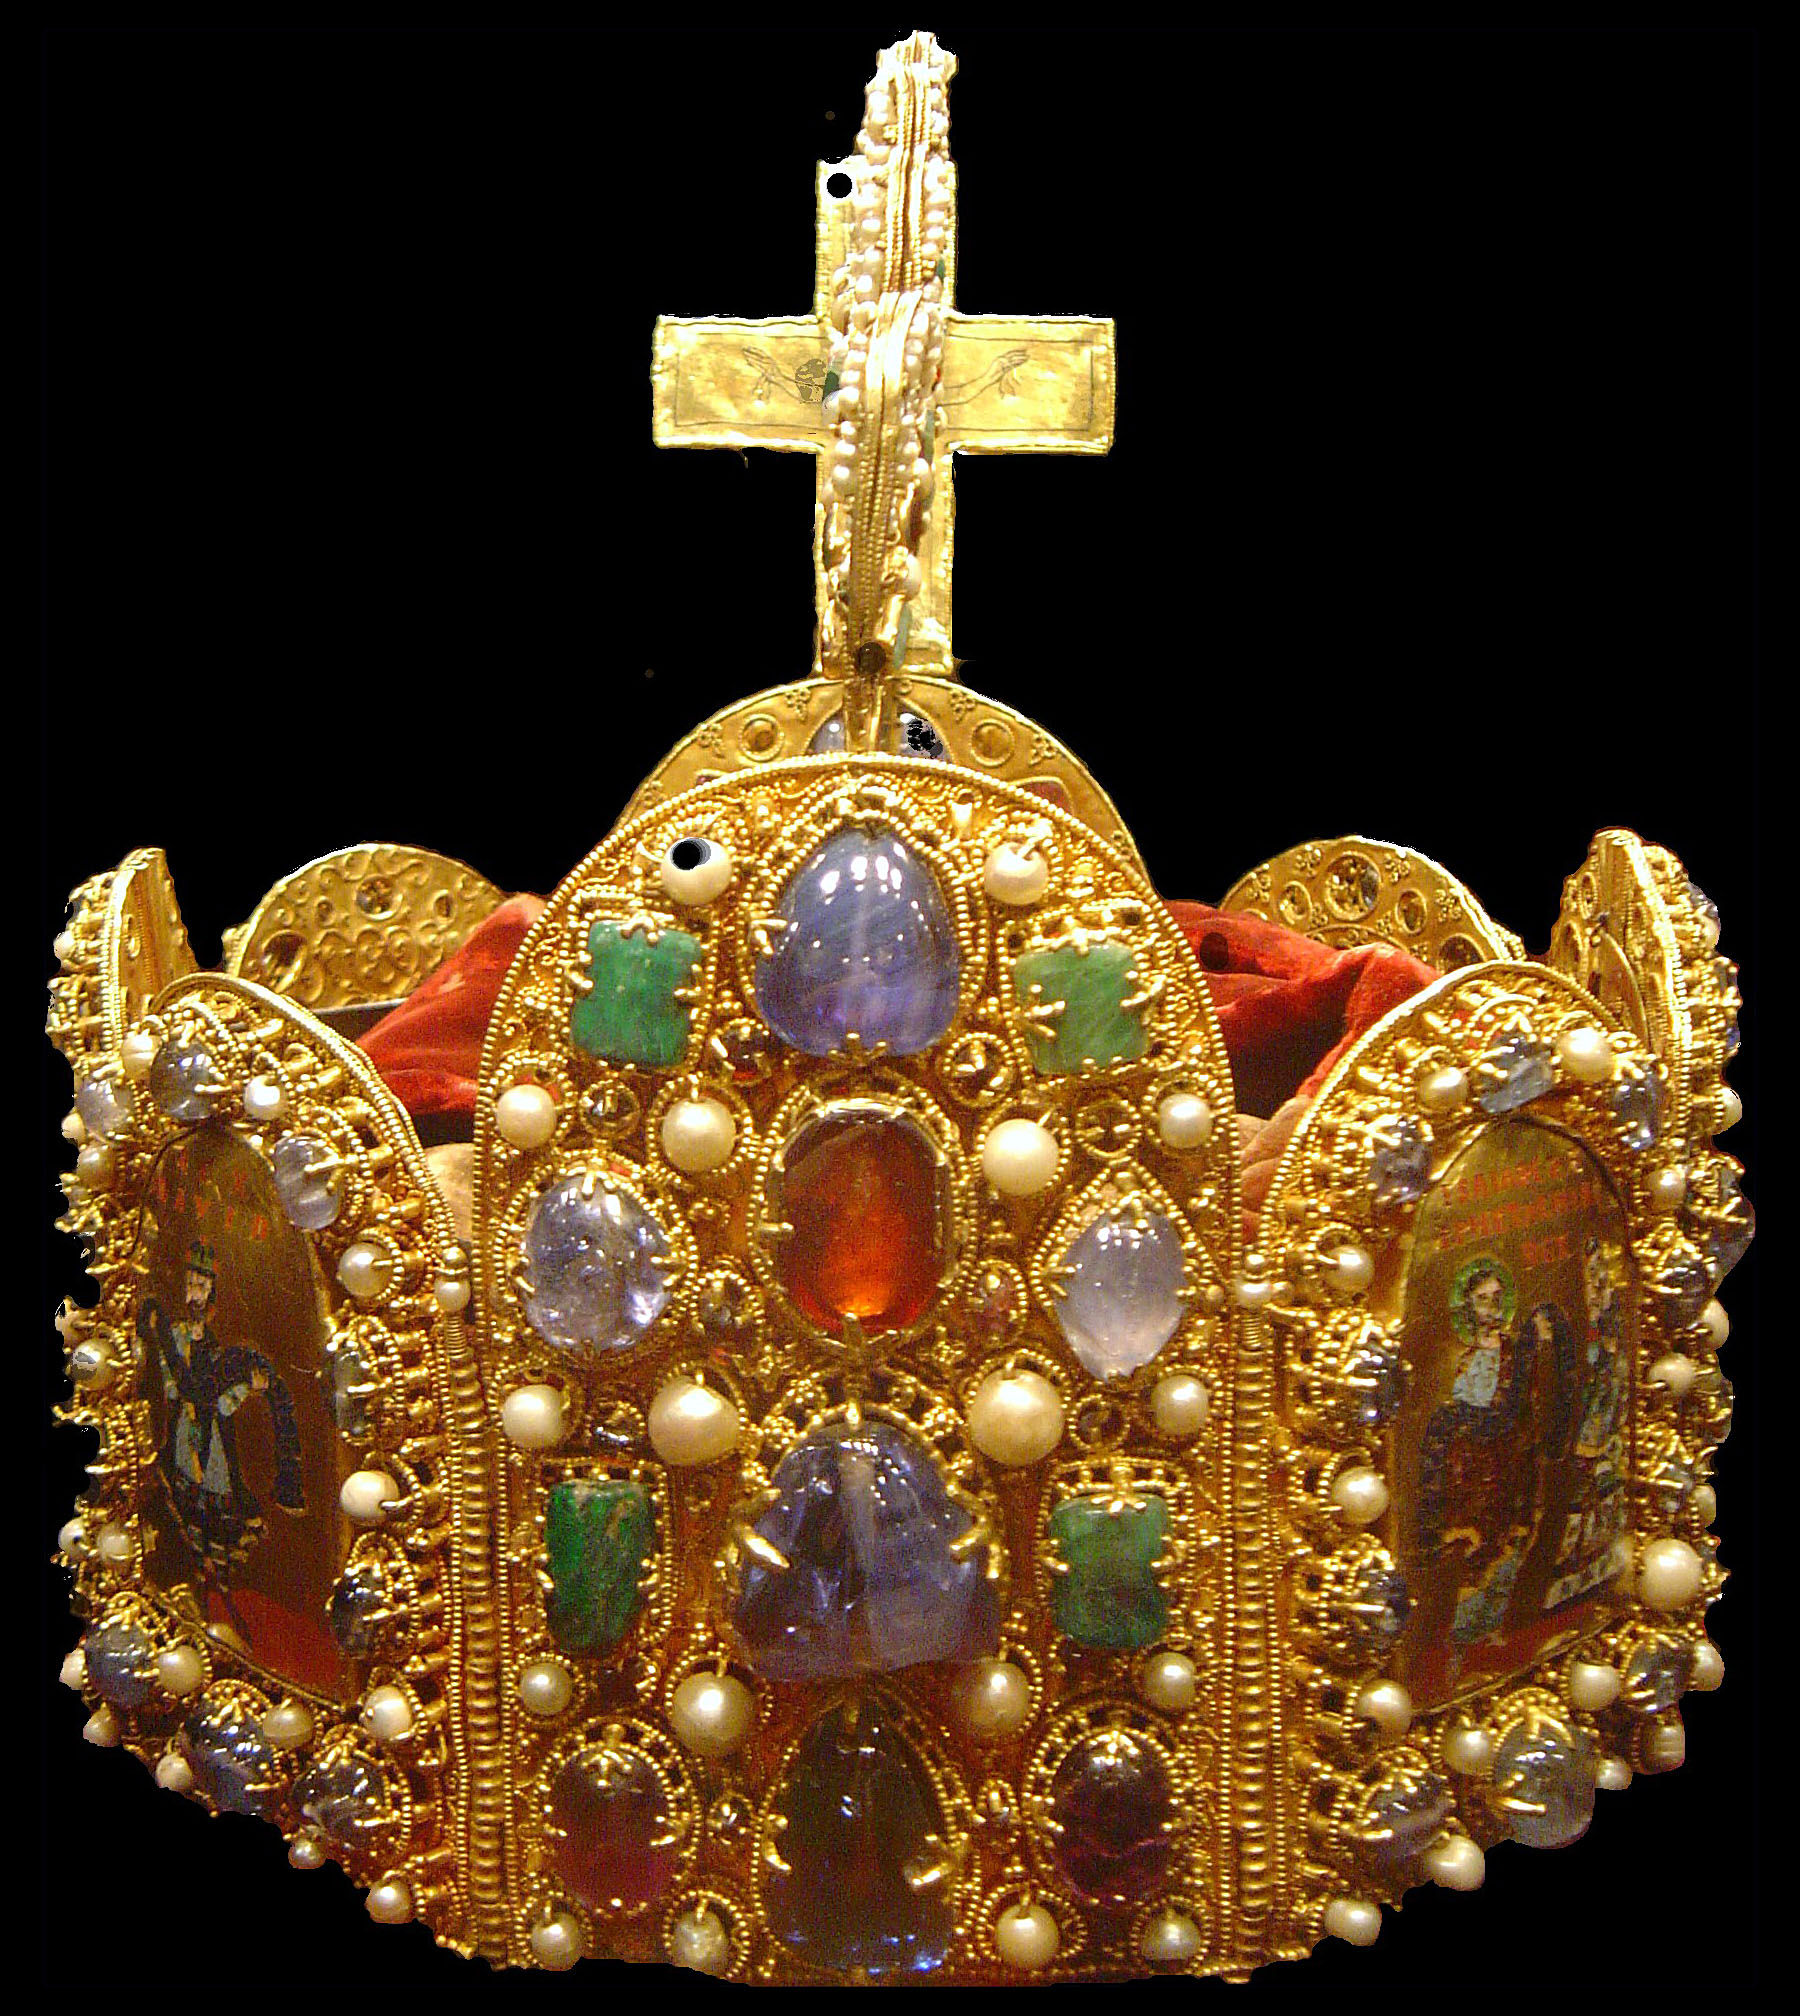 Holy_Roman_Empire_crown_dsc02909.jpg